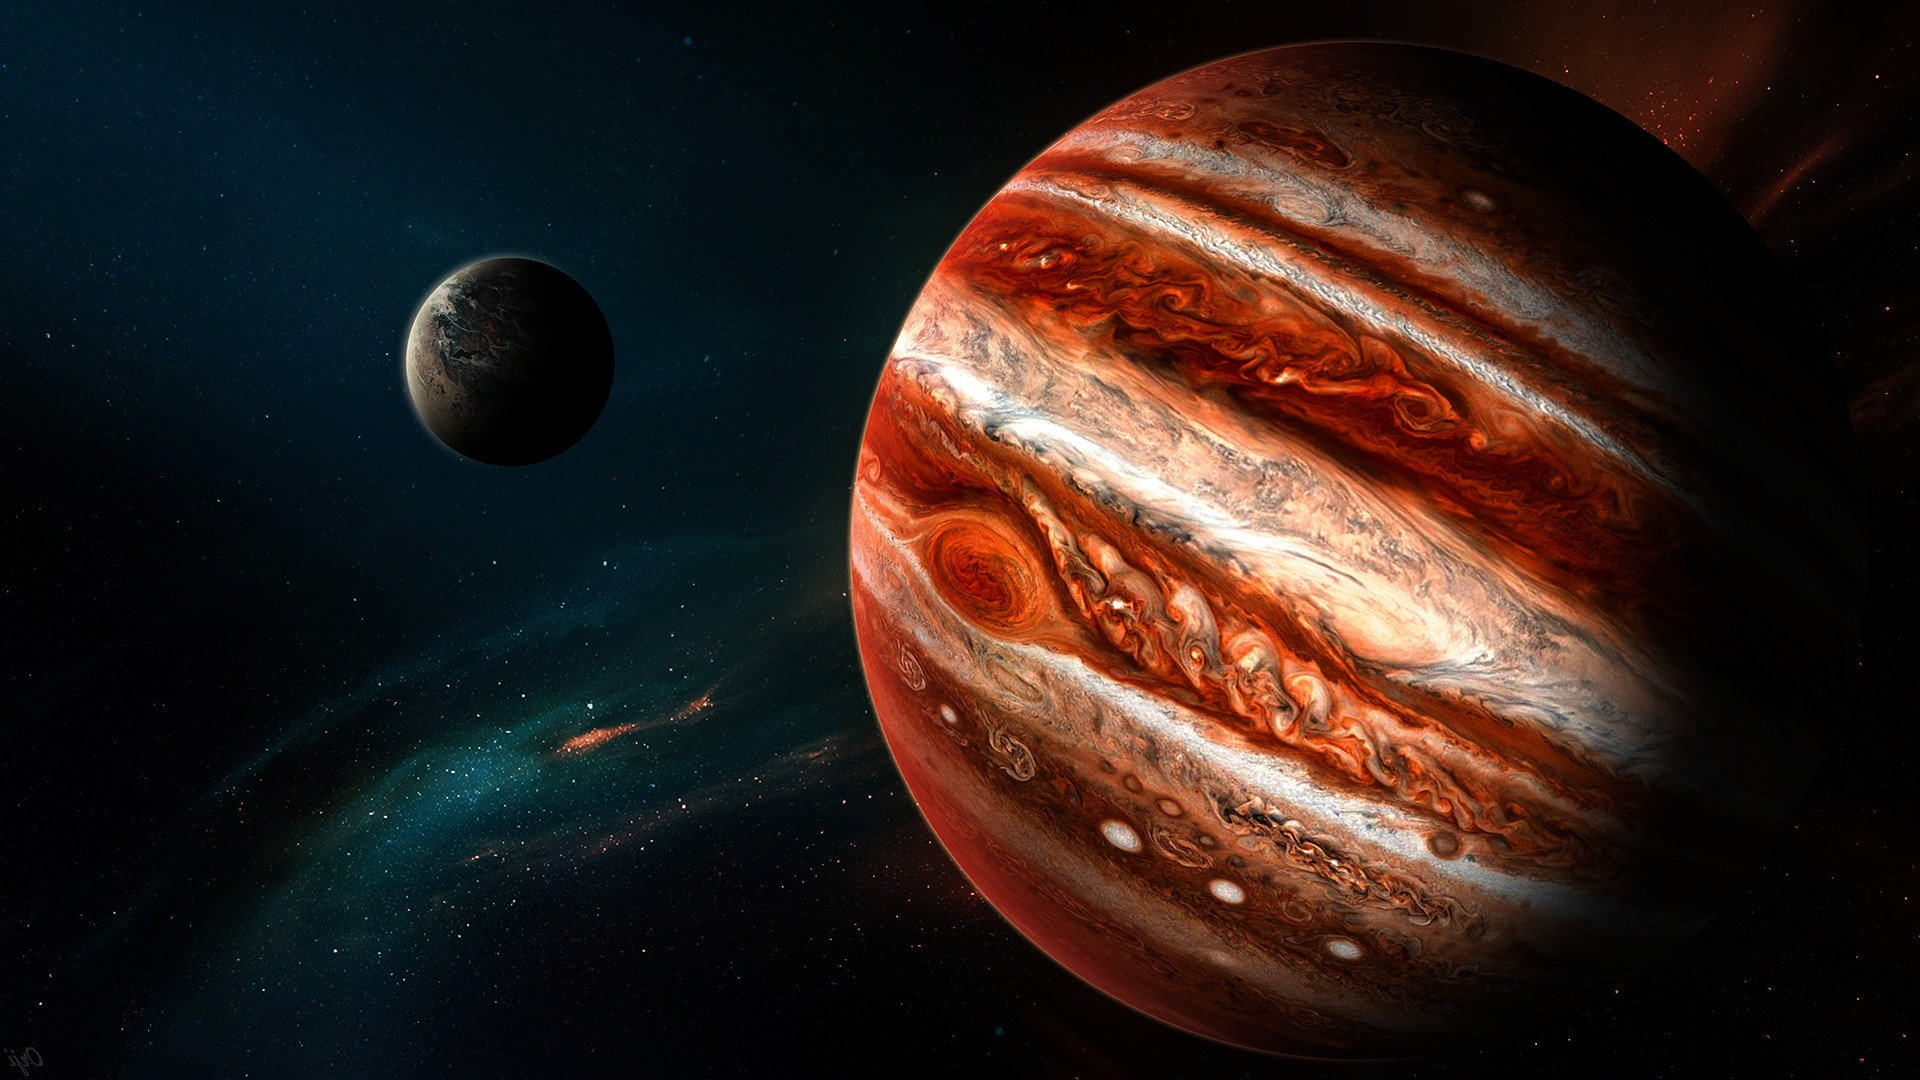 Jupiter Wallpaper 14   1920 X 1080 stmednet 1920x1080